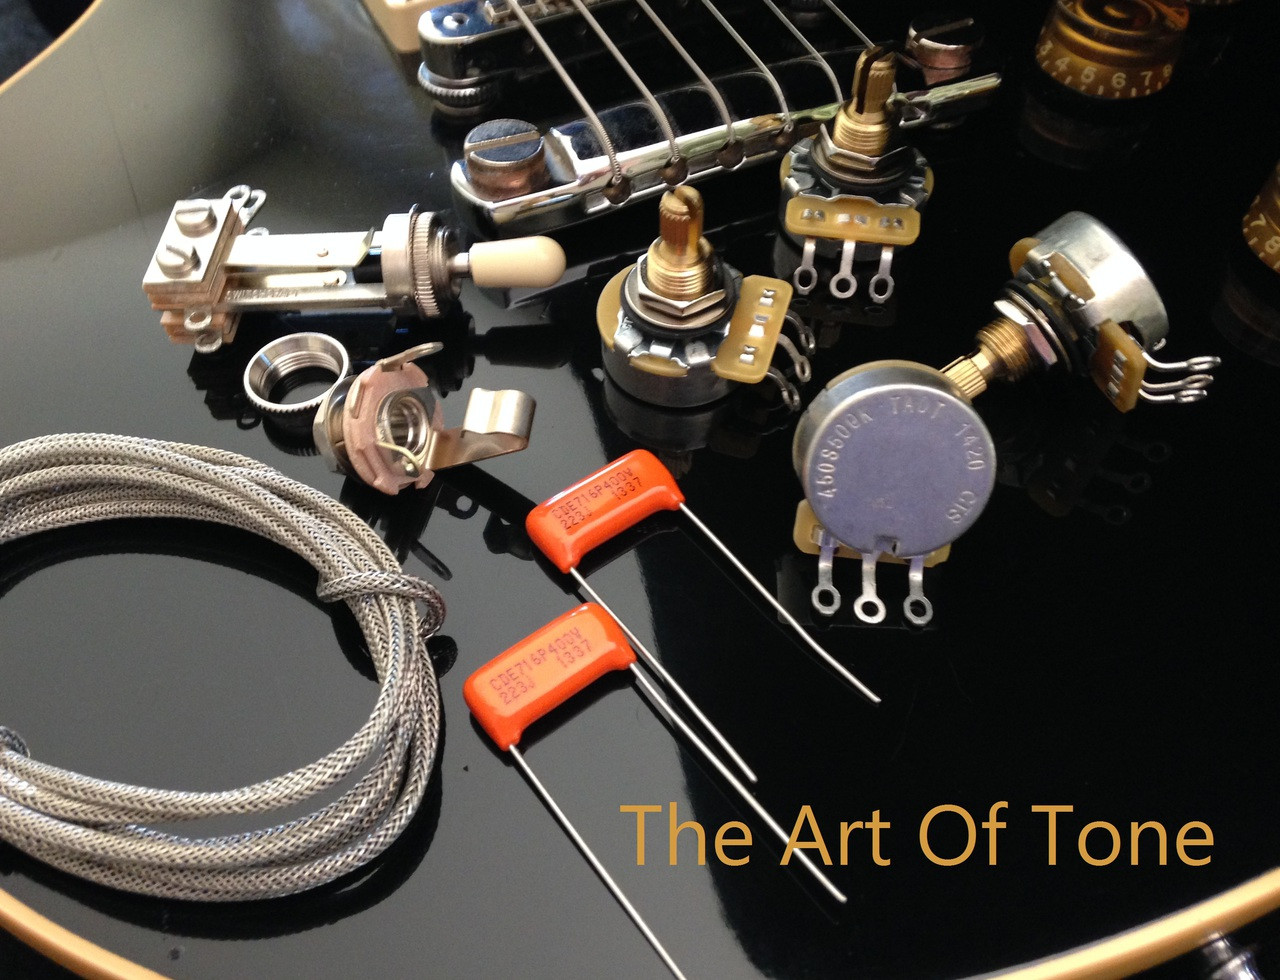 deluxe short shaft wiring kit for gibson usa les paul guitars rh theartoftone com les paul wiring diagram les paul wiring diagram 50's